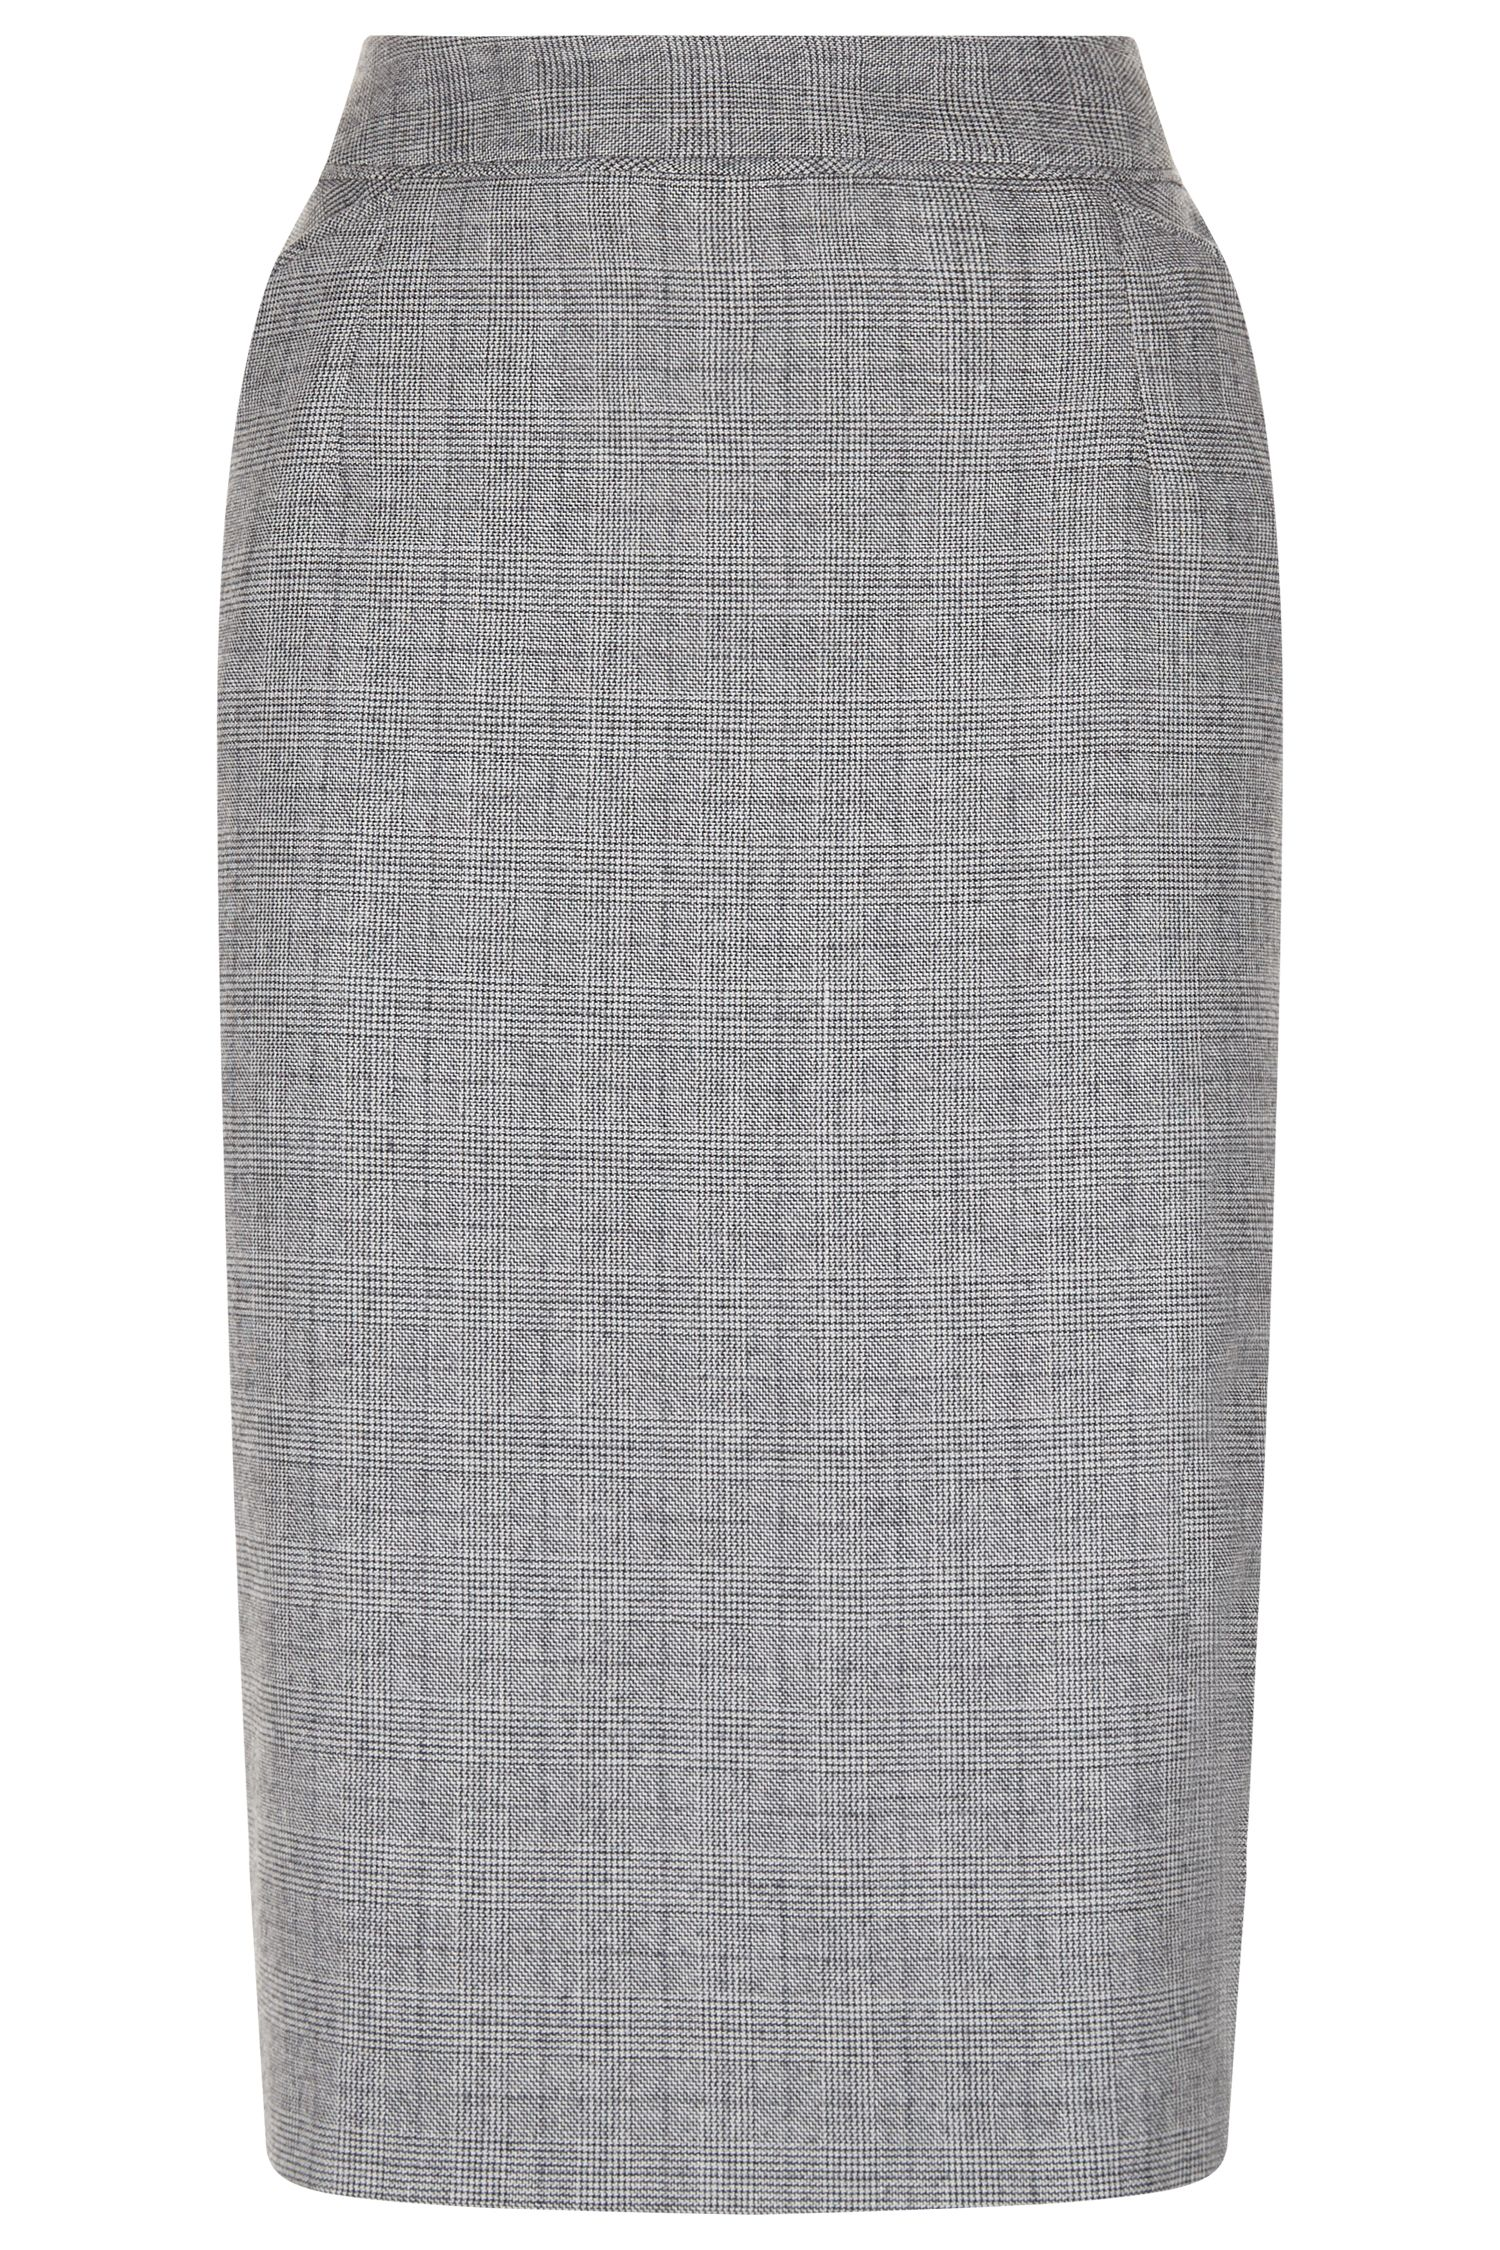 Fenn Wright Manson Asteroid Skirt, Grey